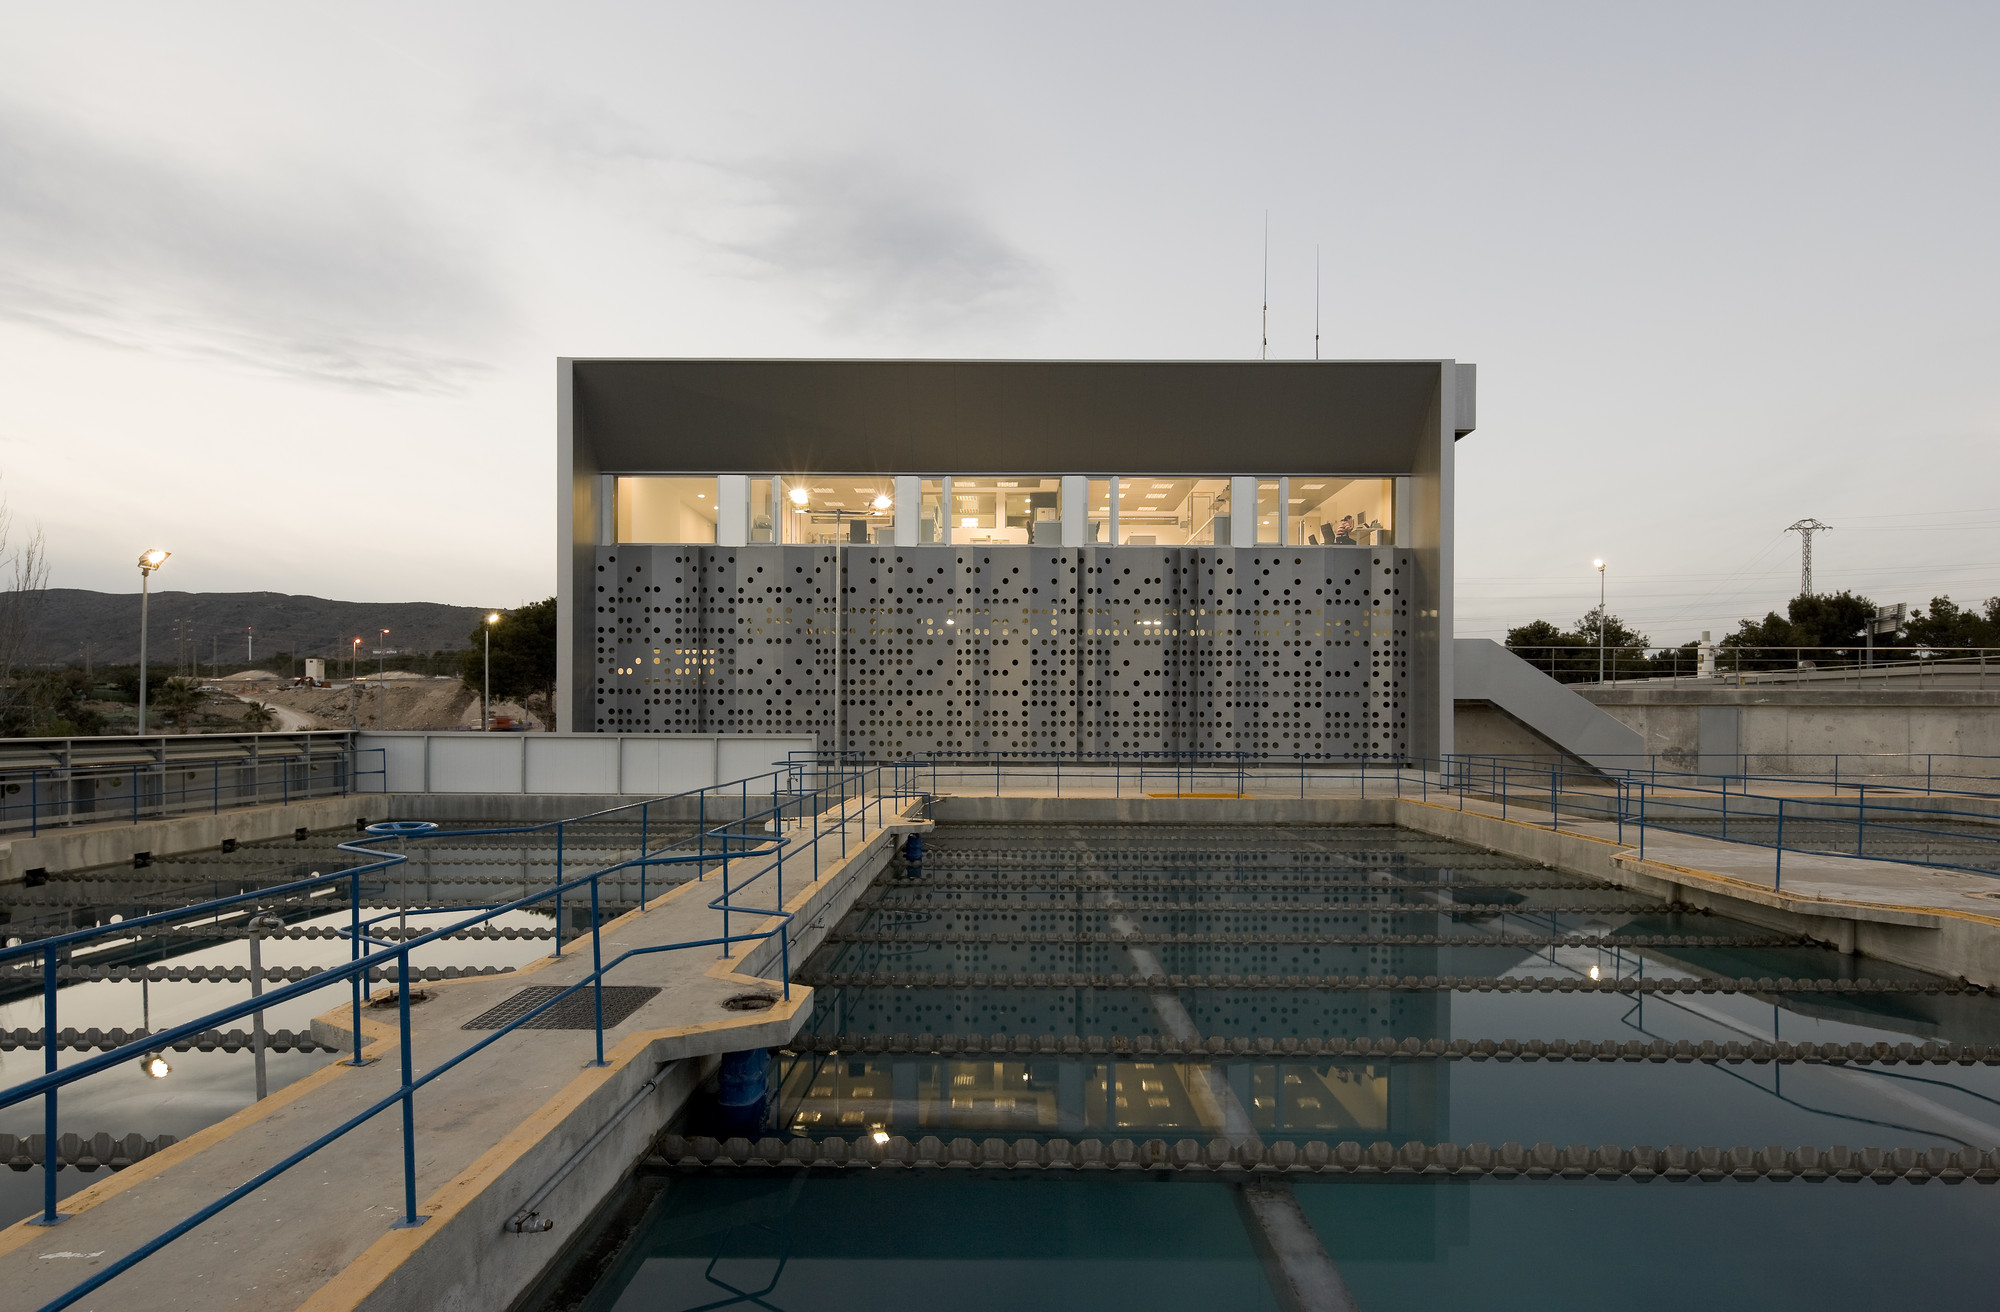 Water Treatment Station of Benidorm / Otxotorena, © Pedro Pegenaute